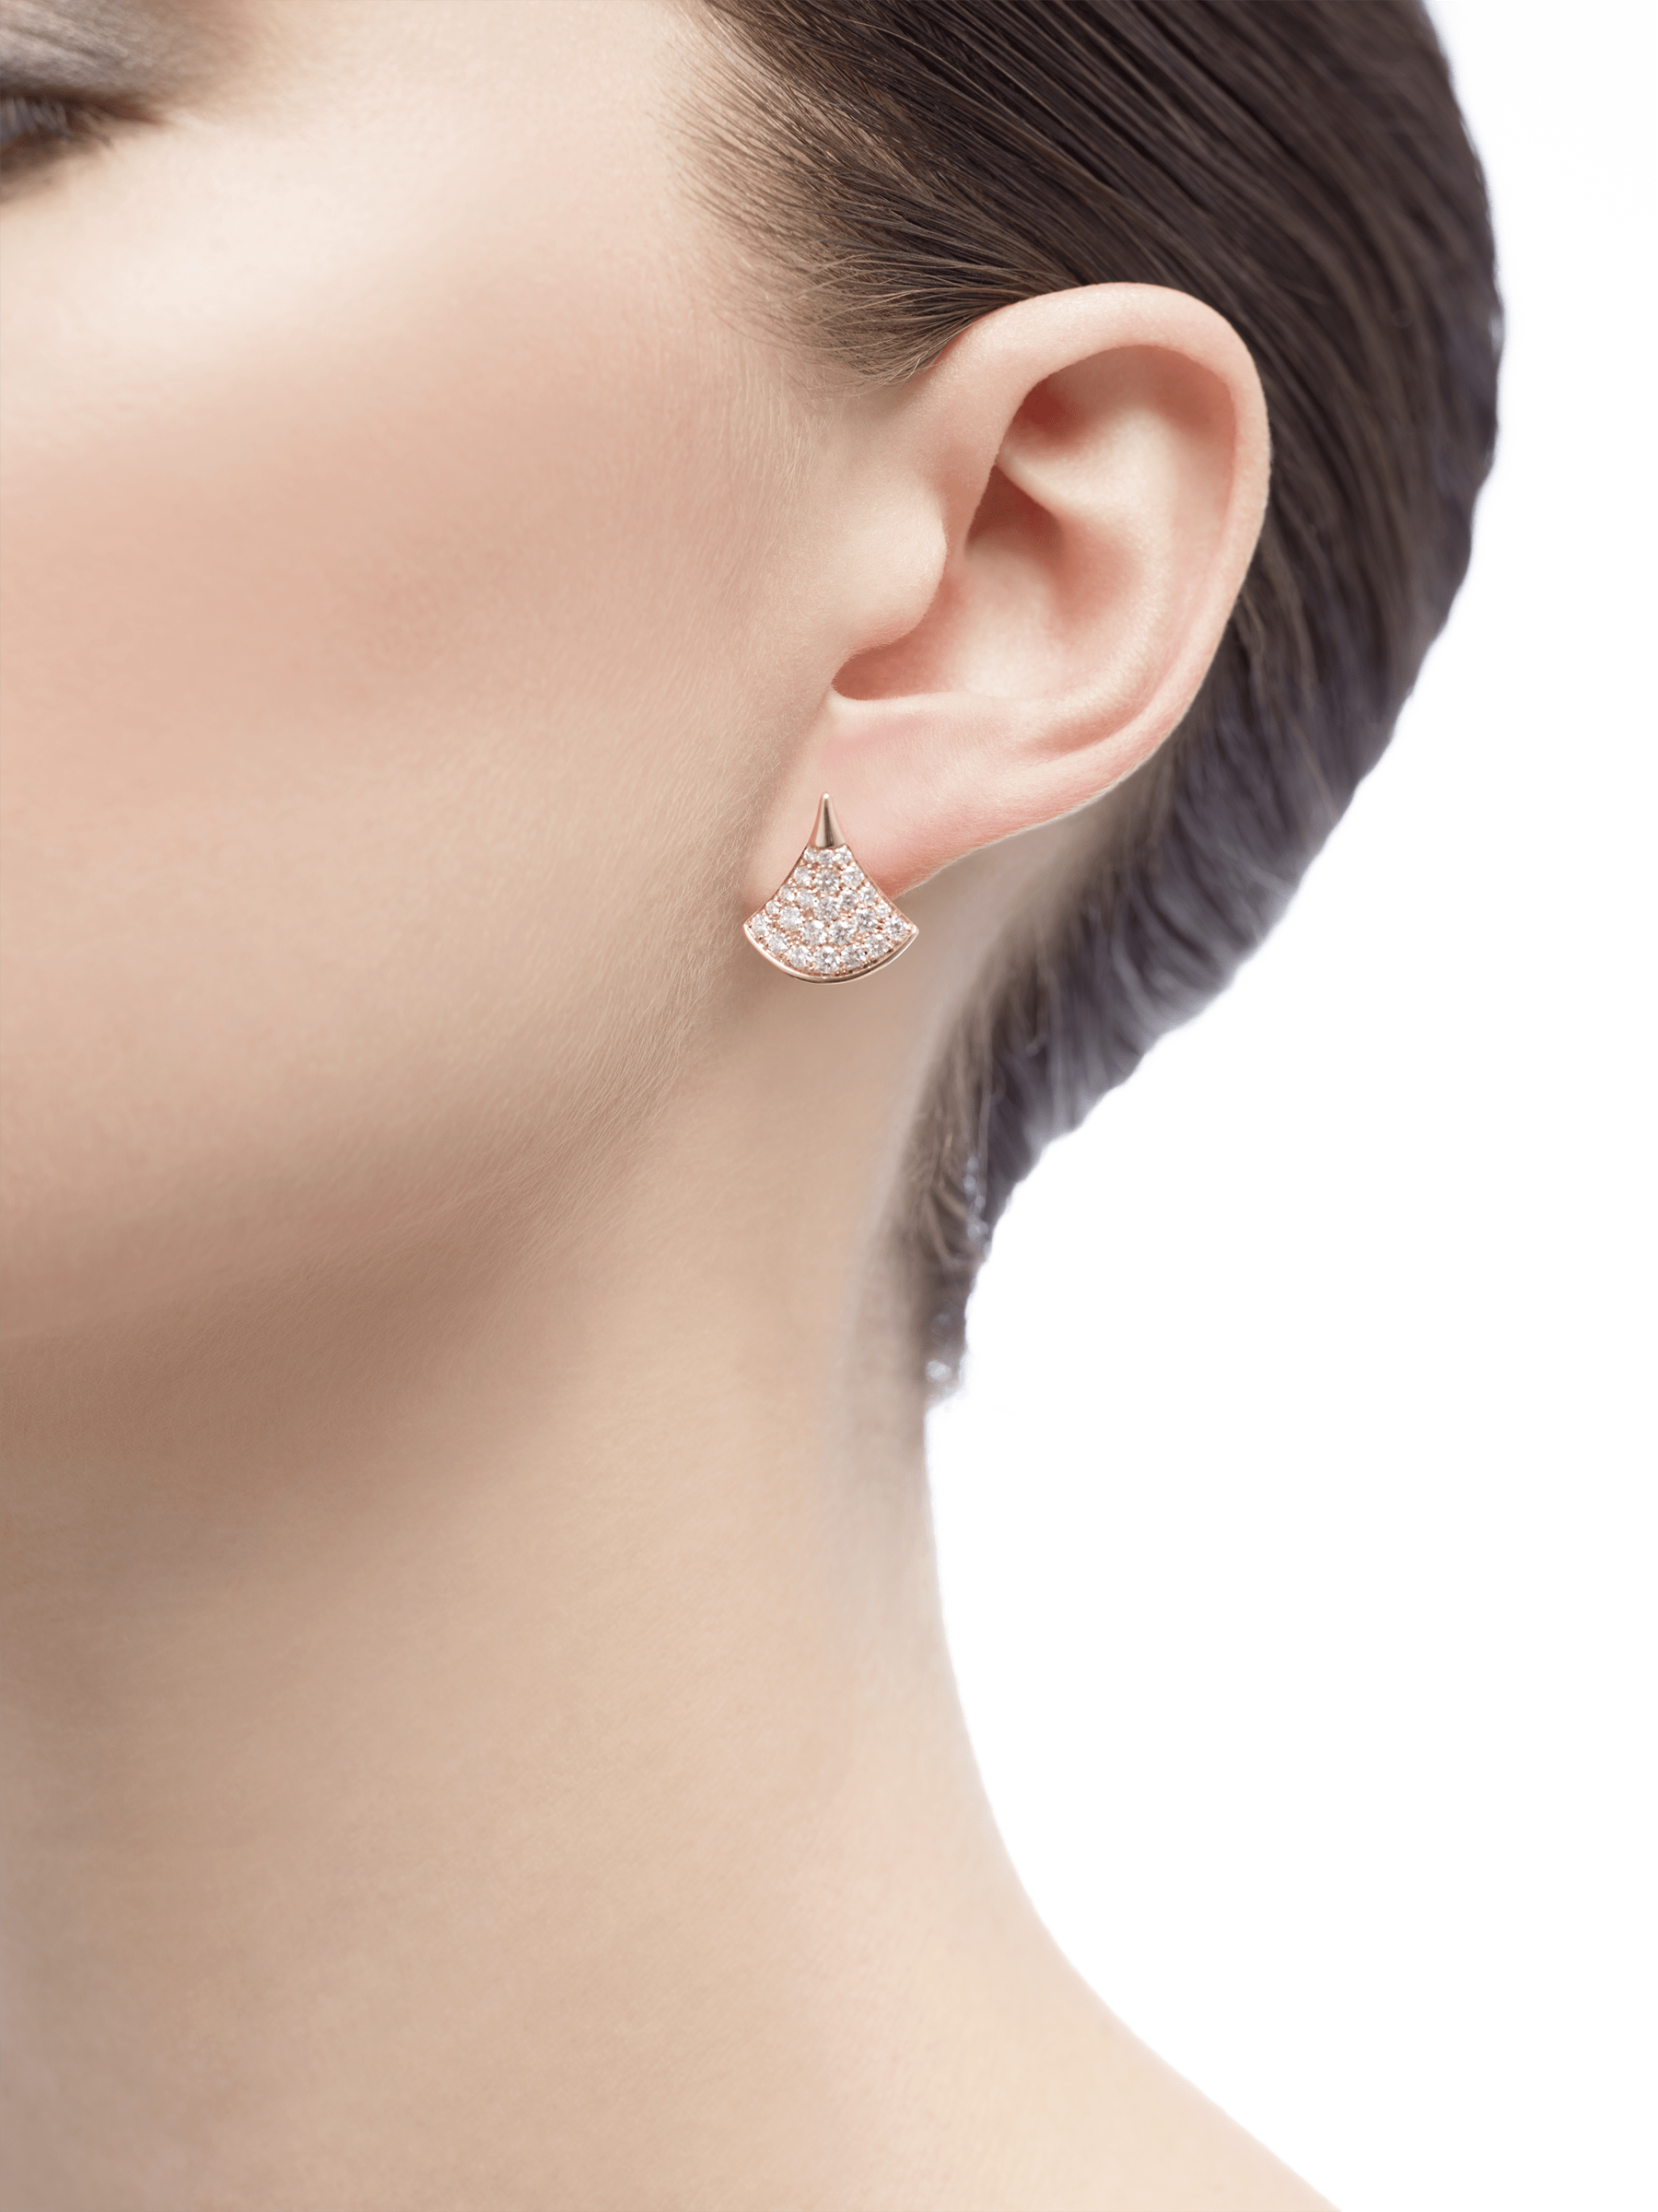 DIVAS' DREAM stud earrings in 18 kt rose gold, set with pavé diamonds (0.90 ct). 352601 image 4